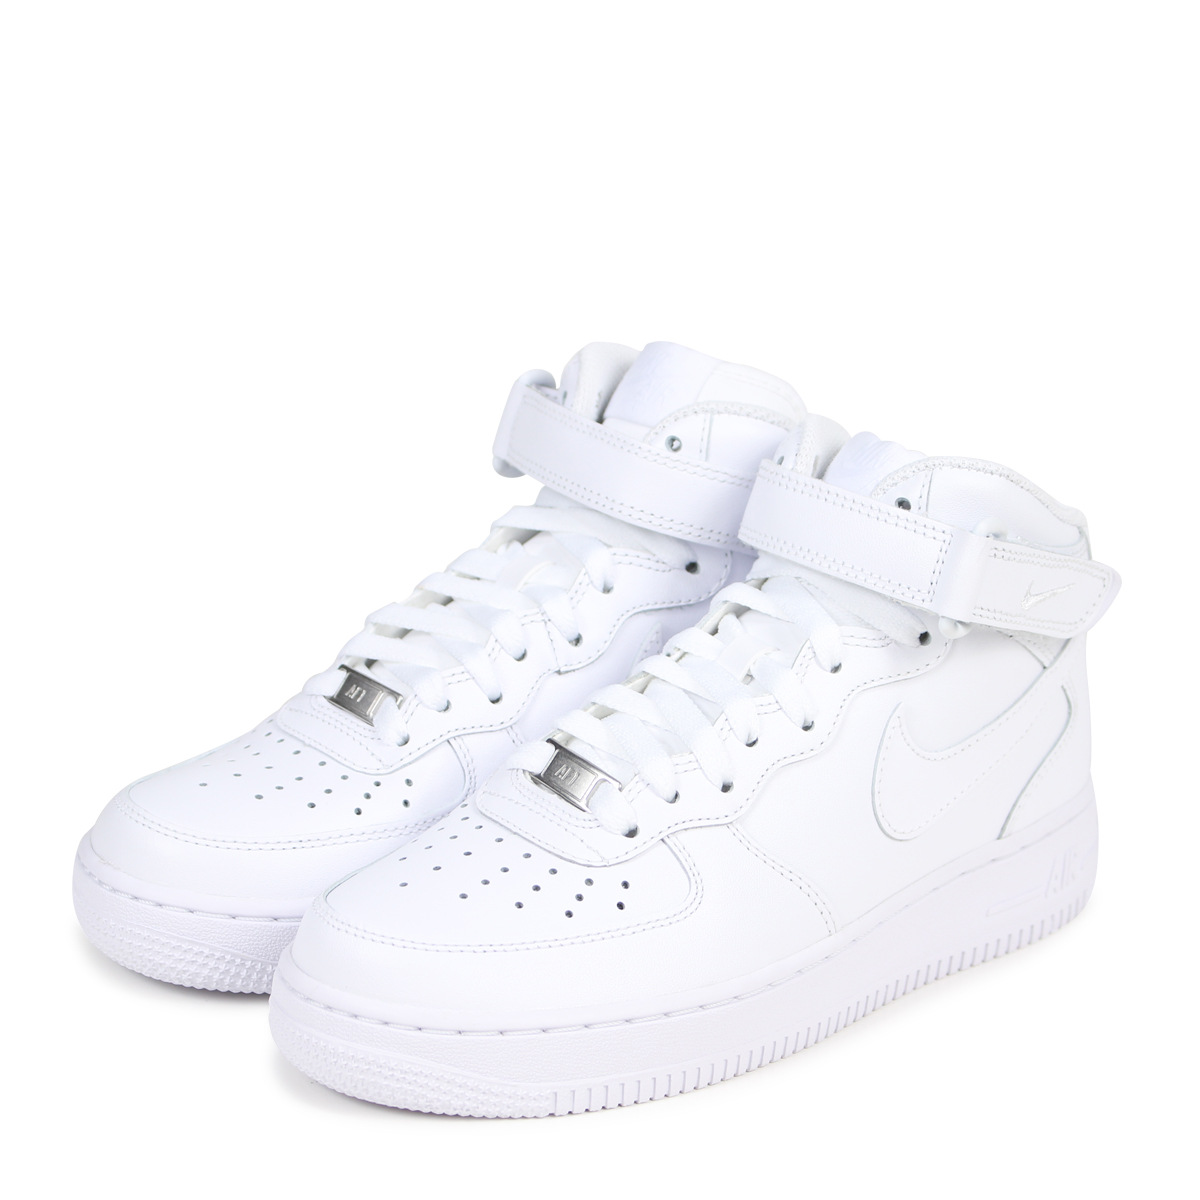 NIKE Nike Air Force sneakers Womens WMNS AIR FORCE 1 MID 07 air force 1 mid 366731 100 men's shoes white [82 Add in stock]